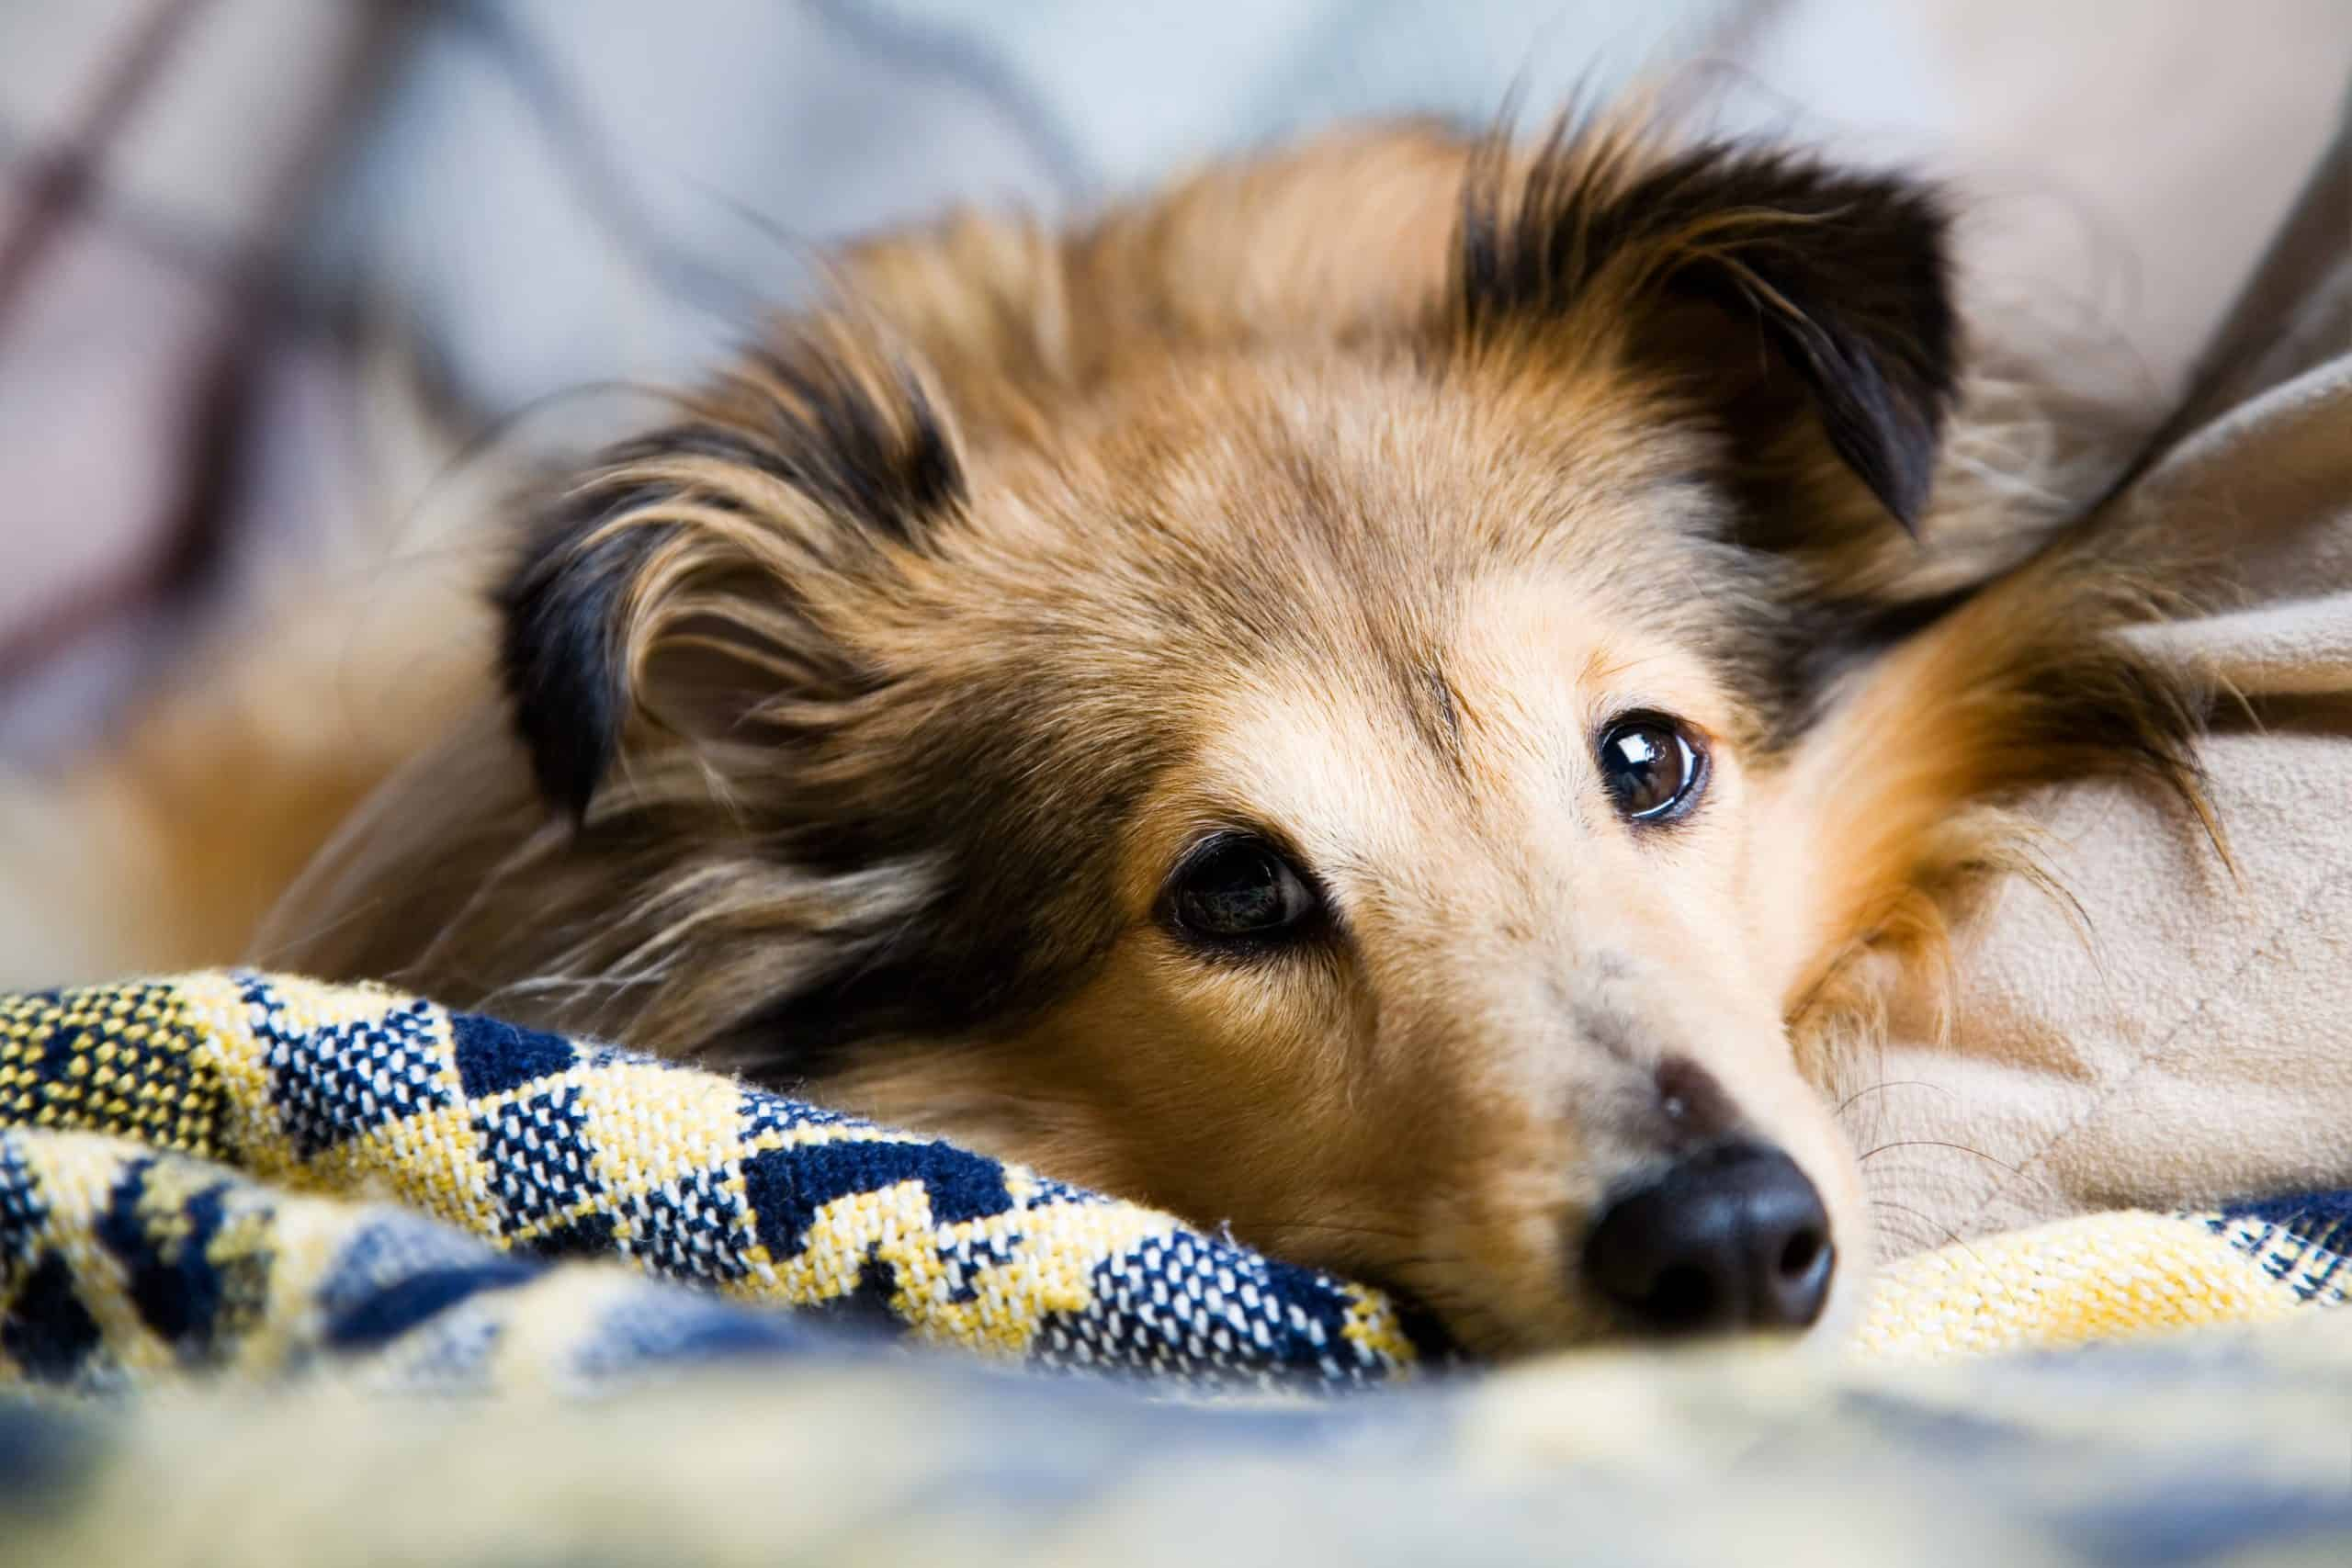 Sheltie dog snuggles into covers. If you have an epileptic dog, create a plan to help calm your dog during a seizure.